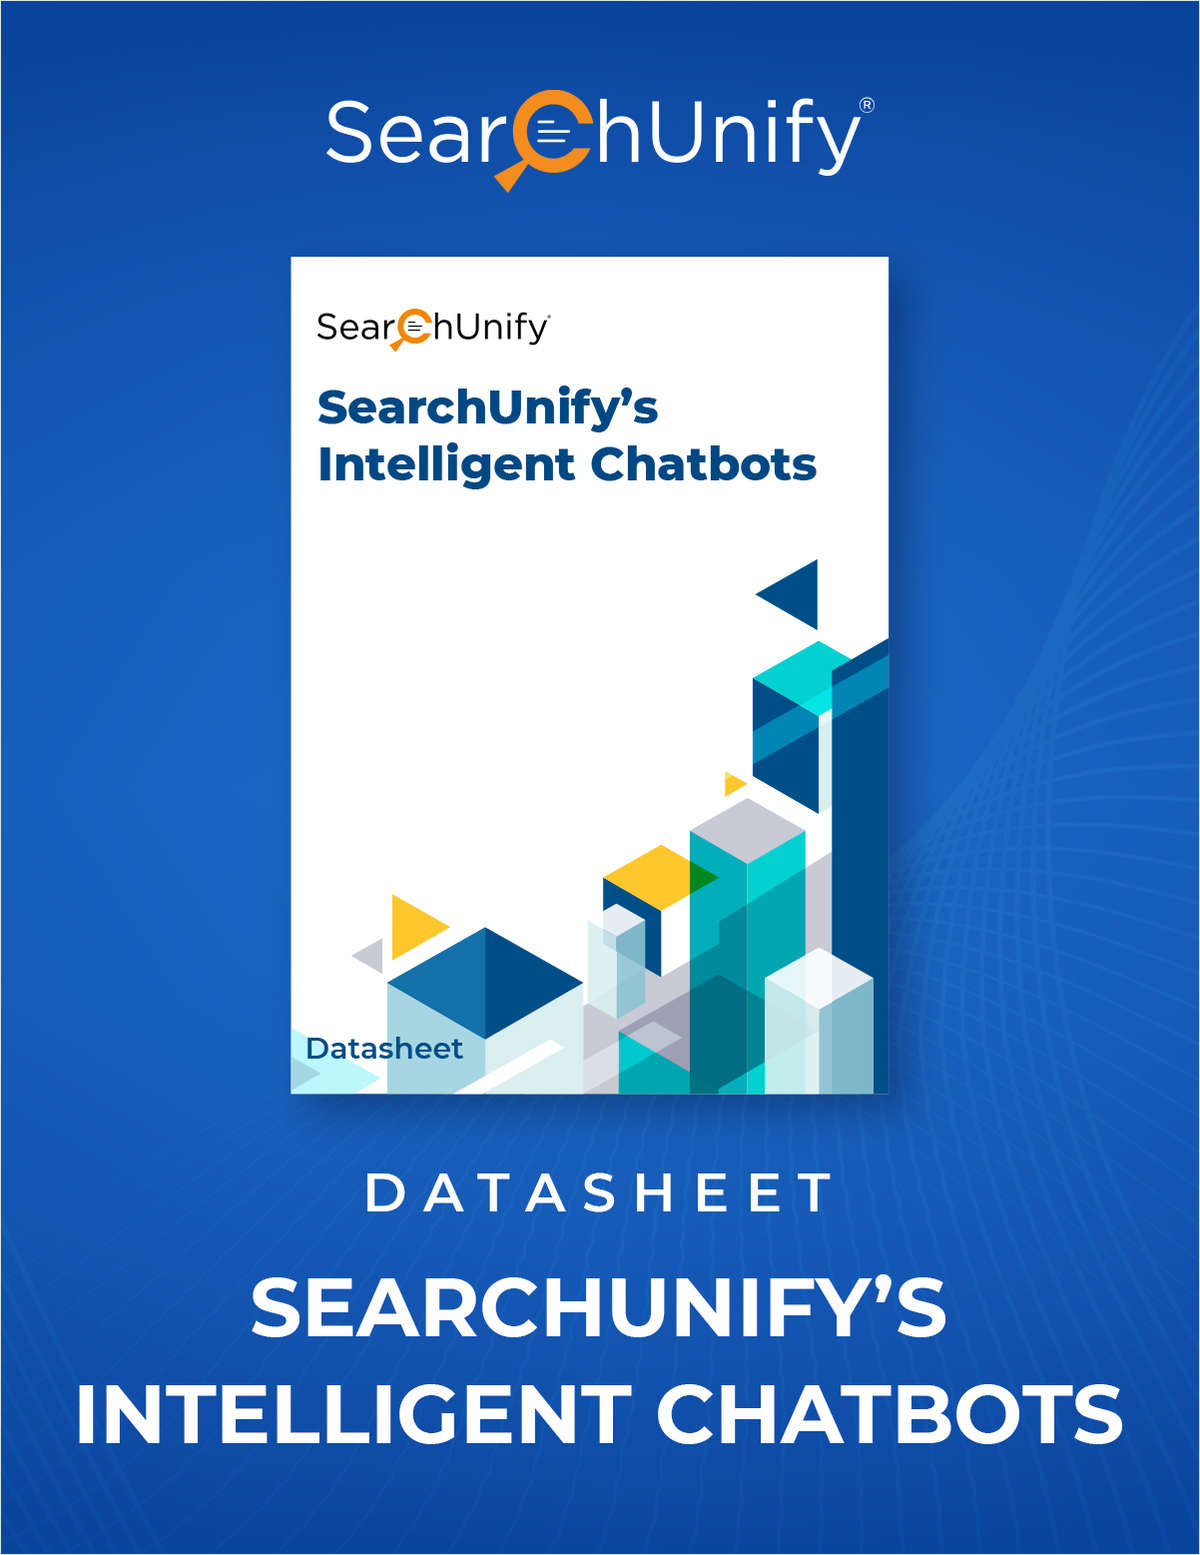 Searchunify's Intelligent Chatbots: A Win-Win for Both Customers & Agents